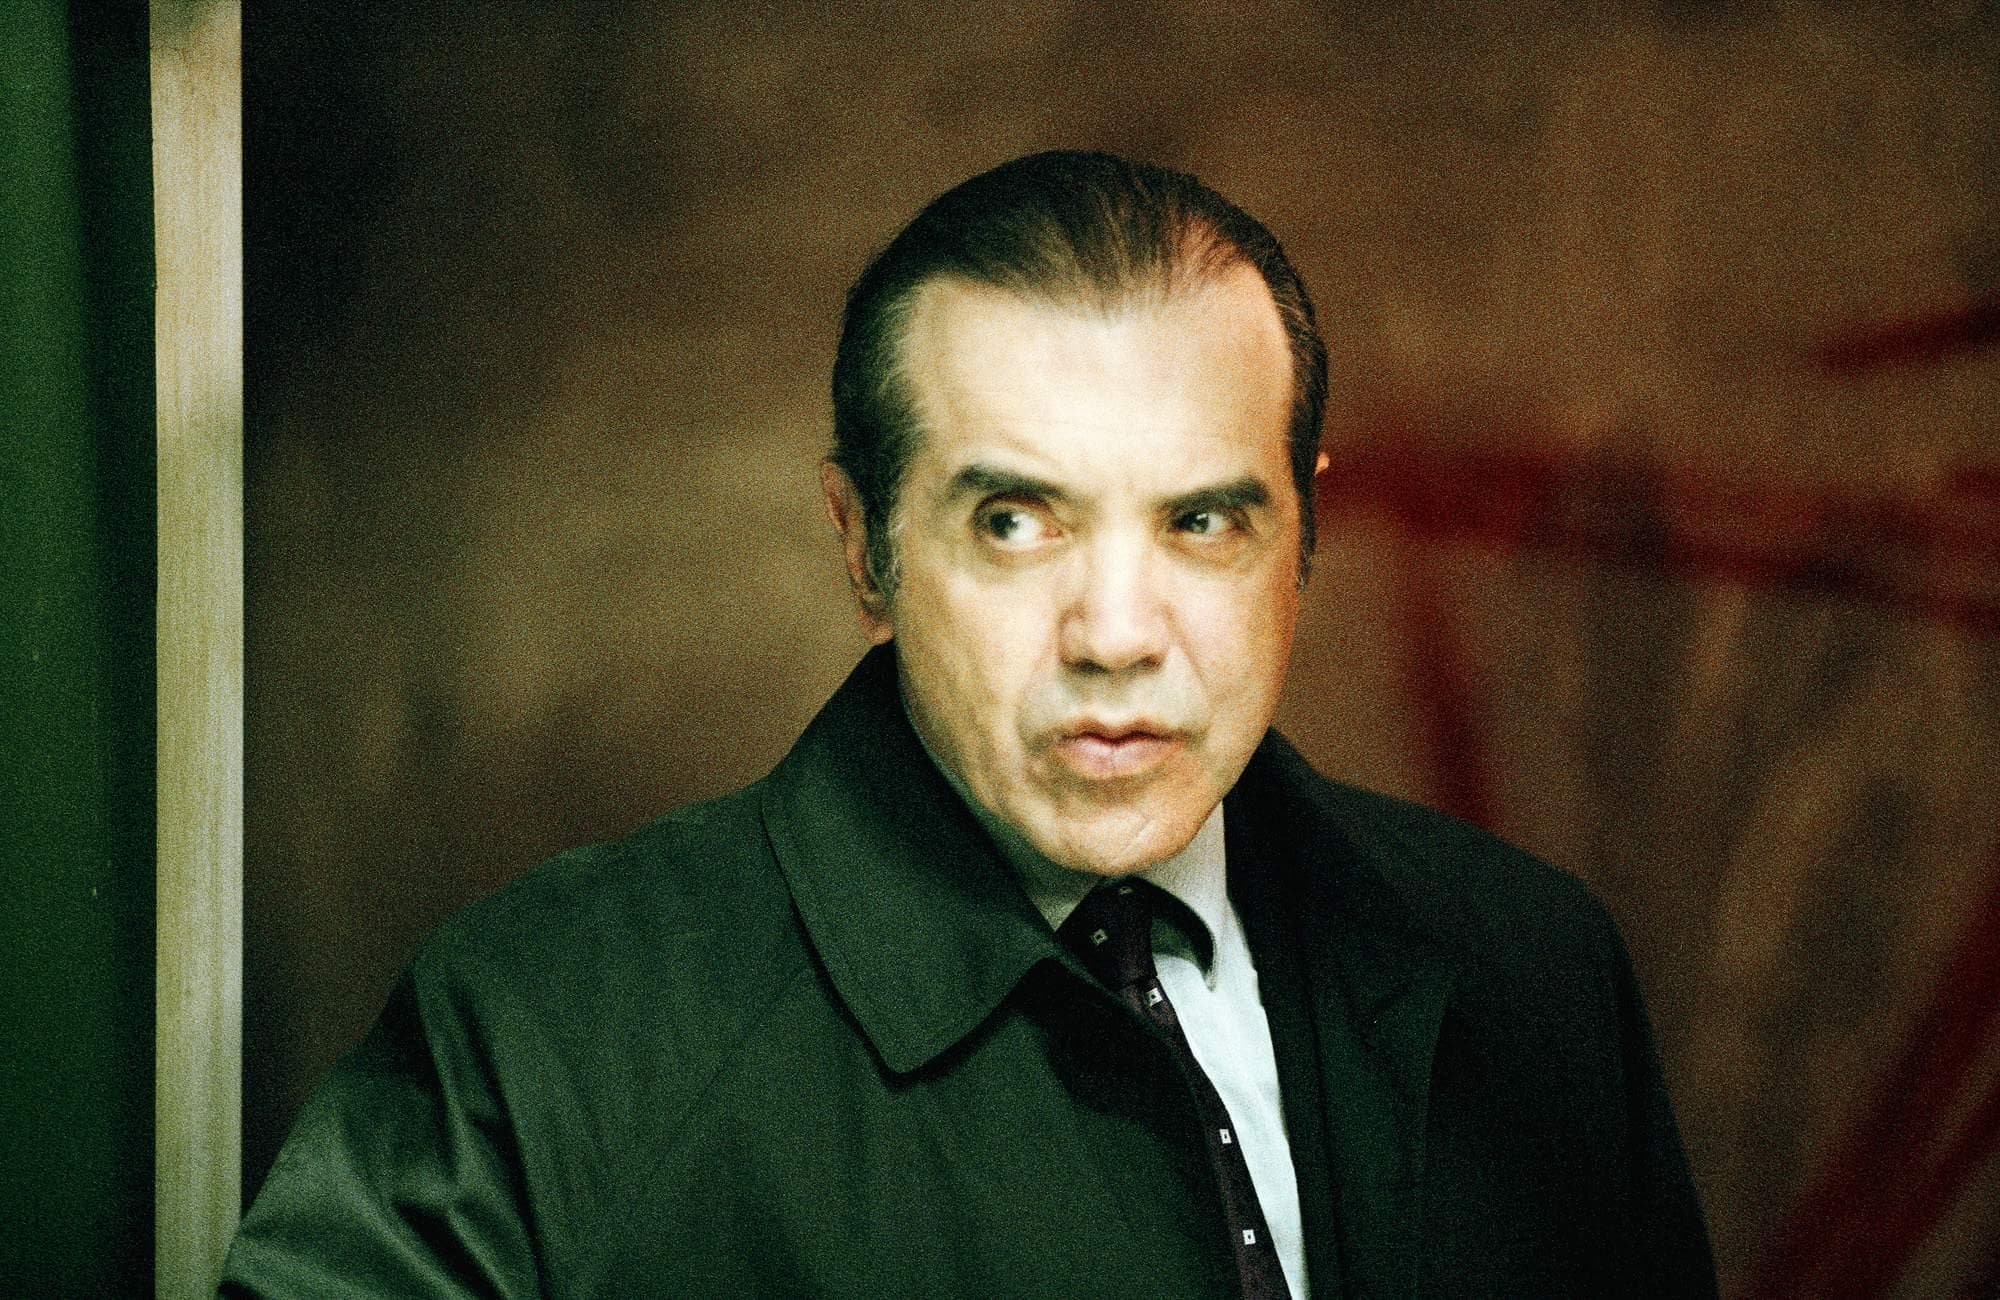 Chazz Palminteri Backgrounds